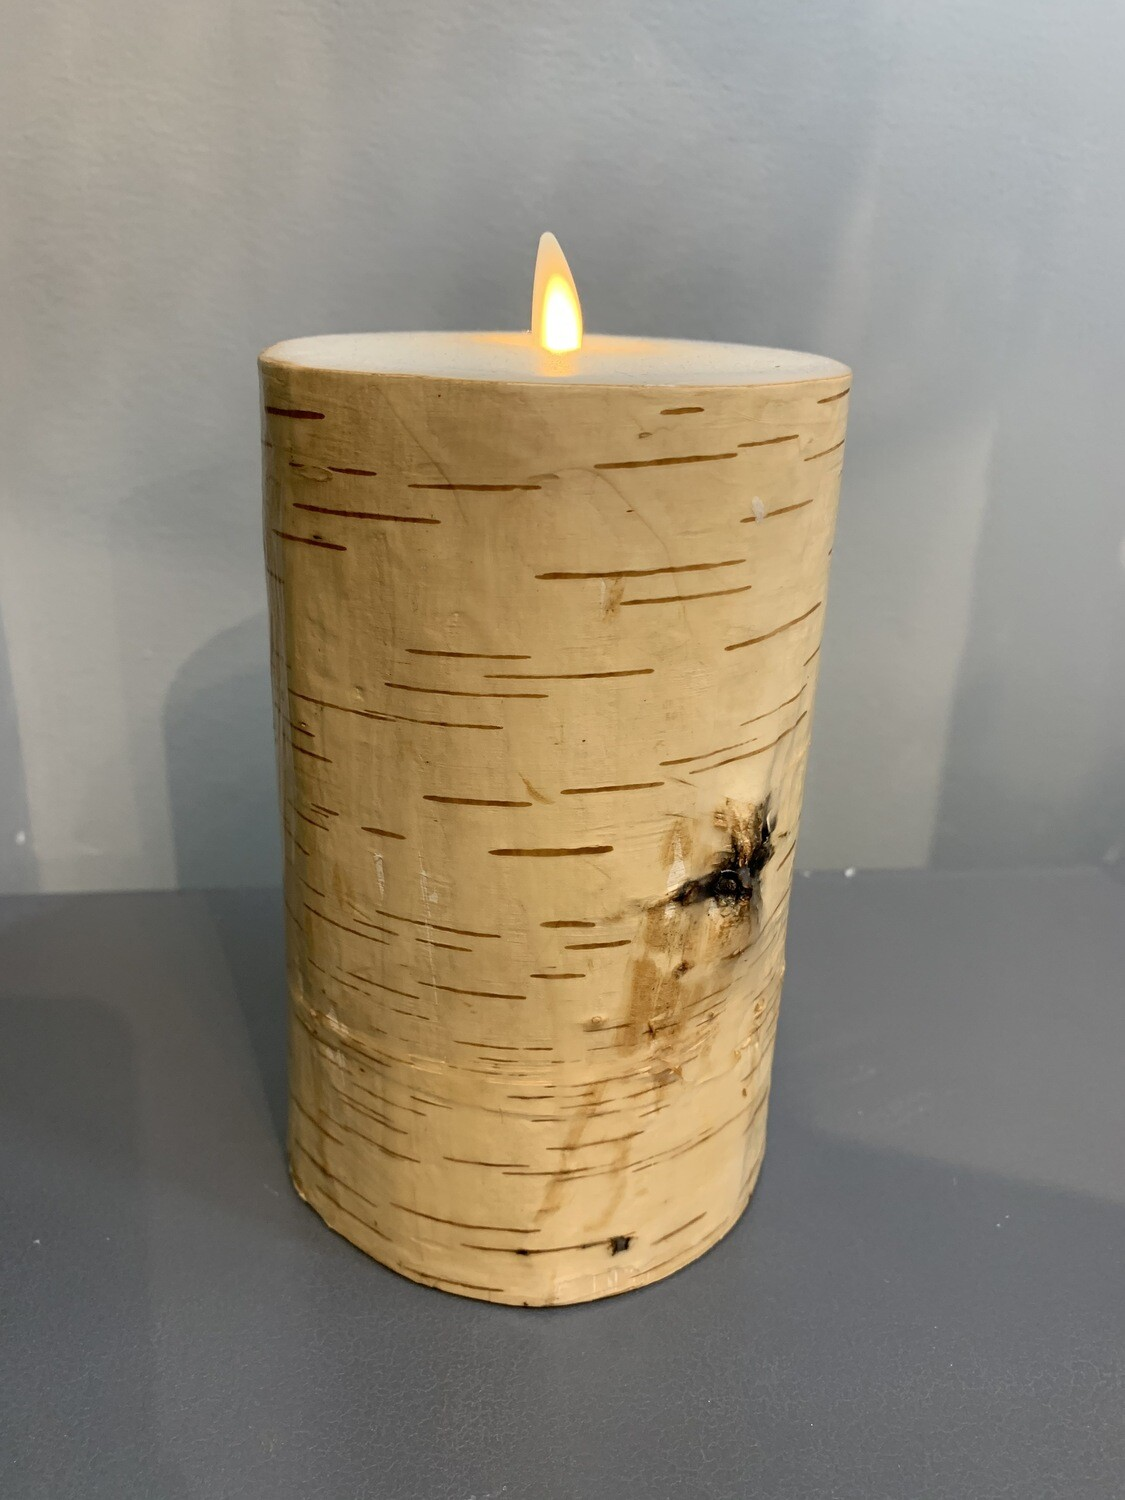 4x7 Birch Wrapped Pillar Candle